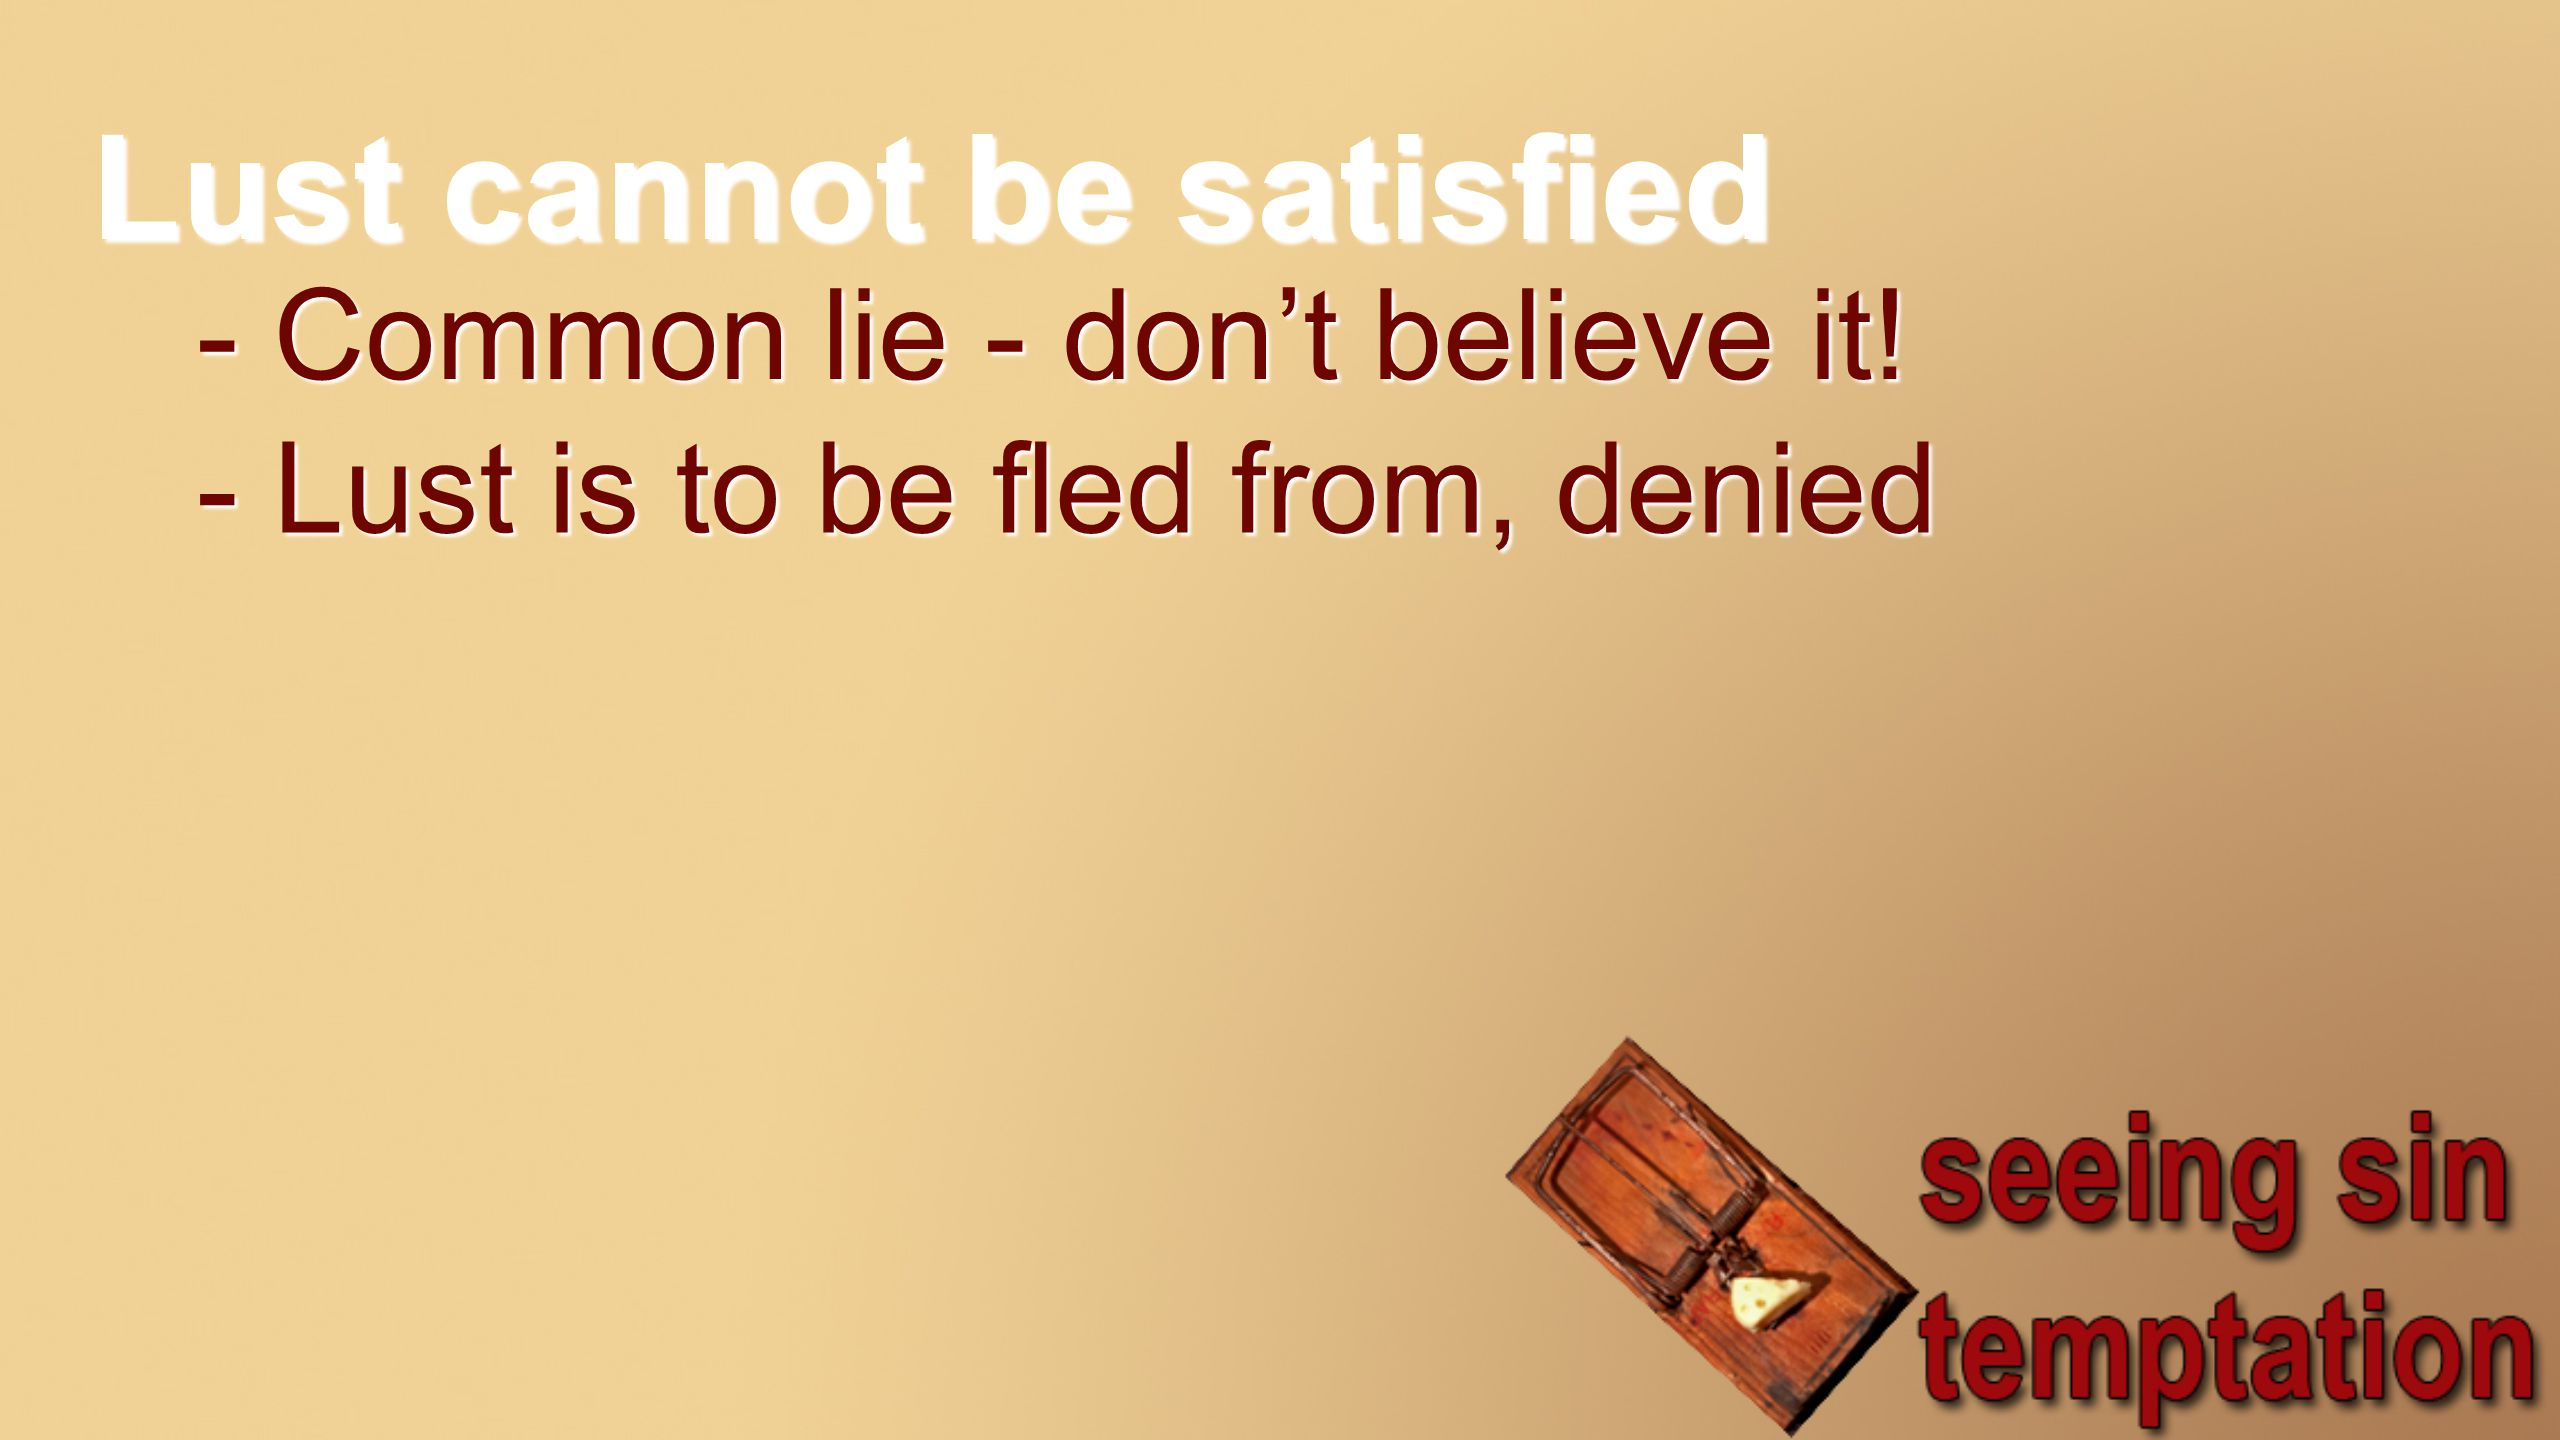 Lust cannot be satisfied - Common lie - don't believe it! - Lust is to be fled from, denied